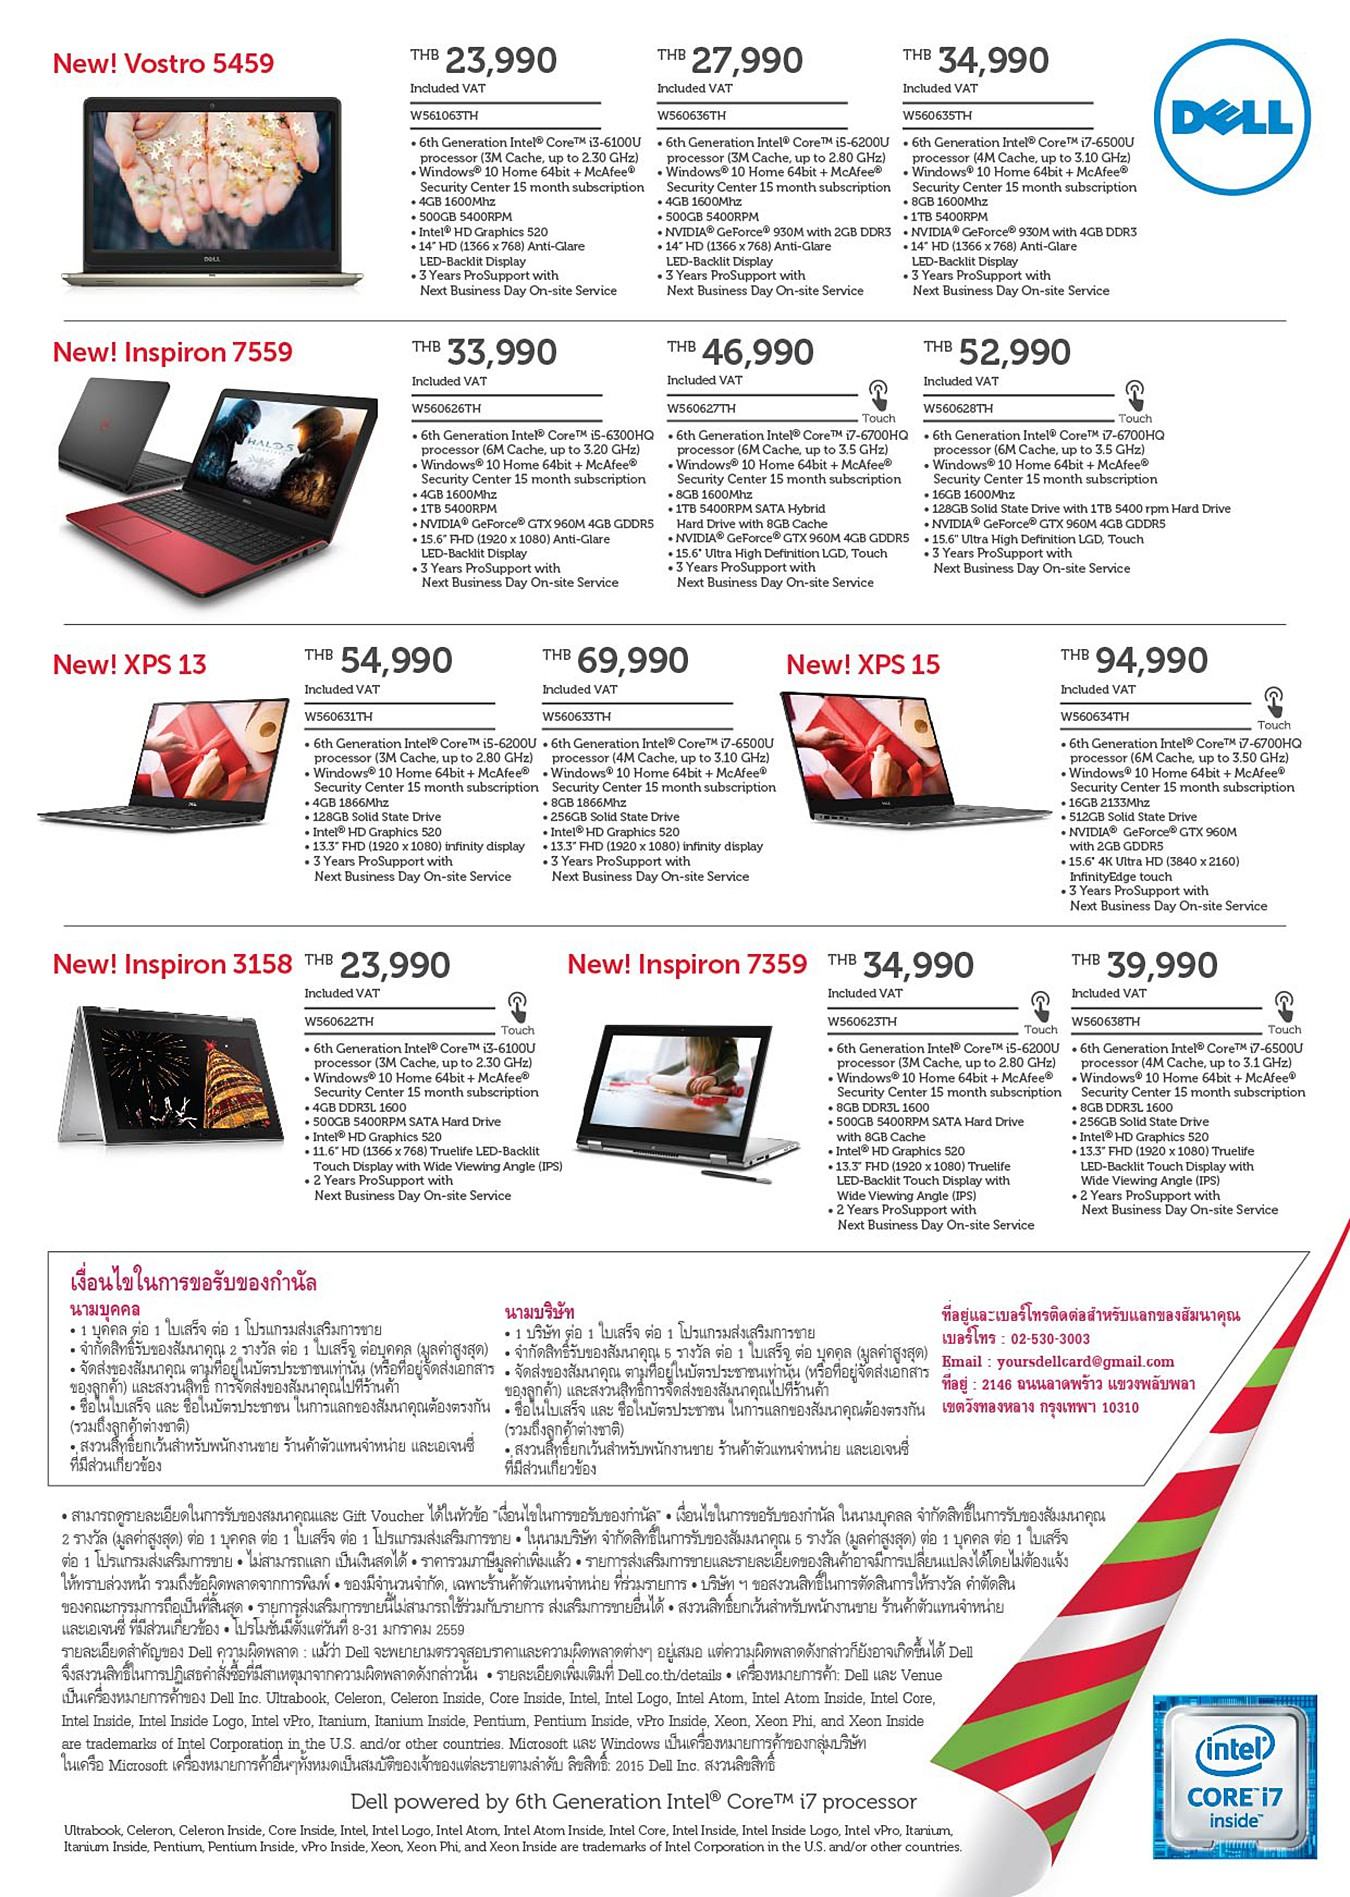 Dell-Holiday-Promotion-02